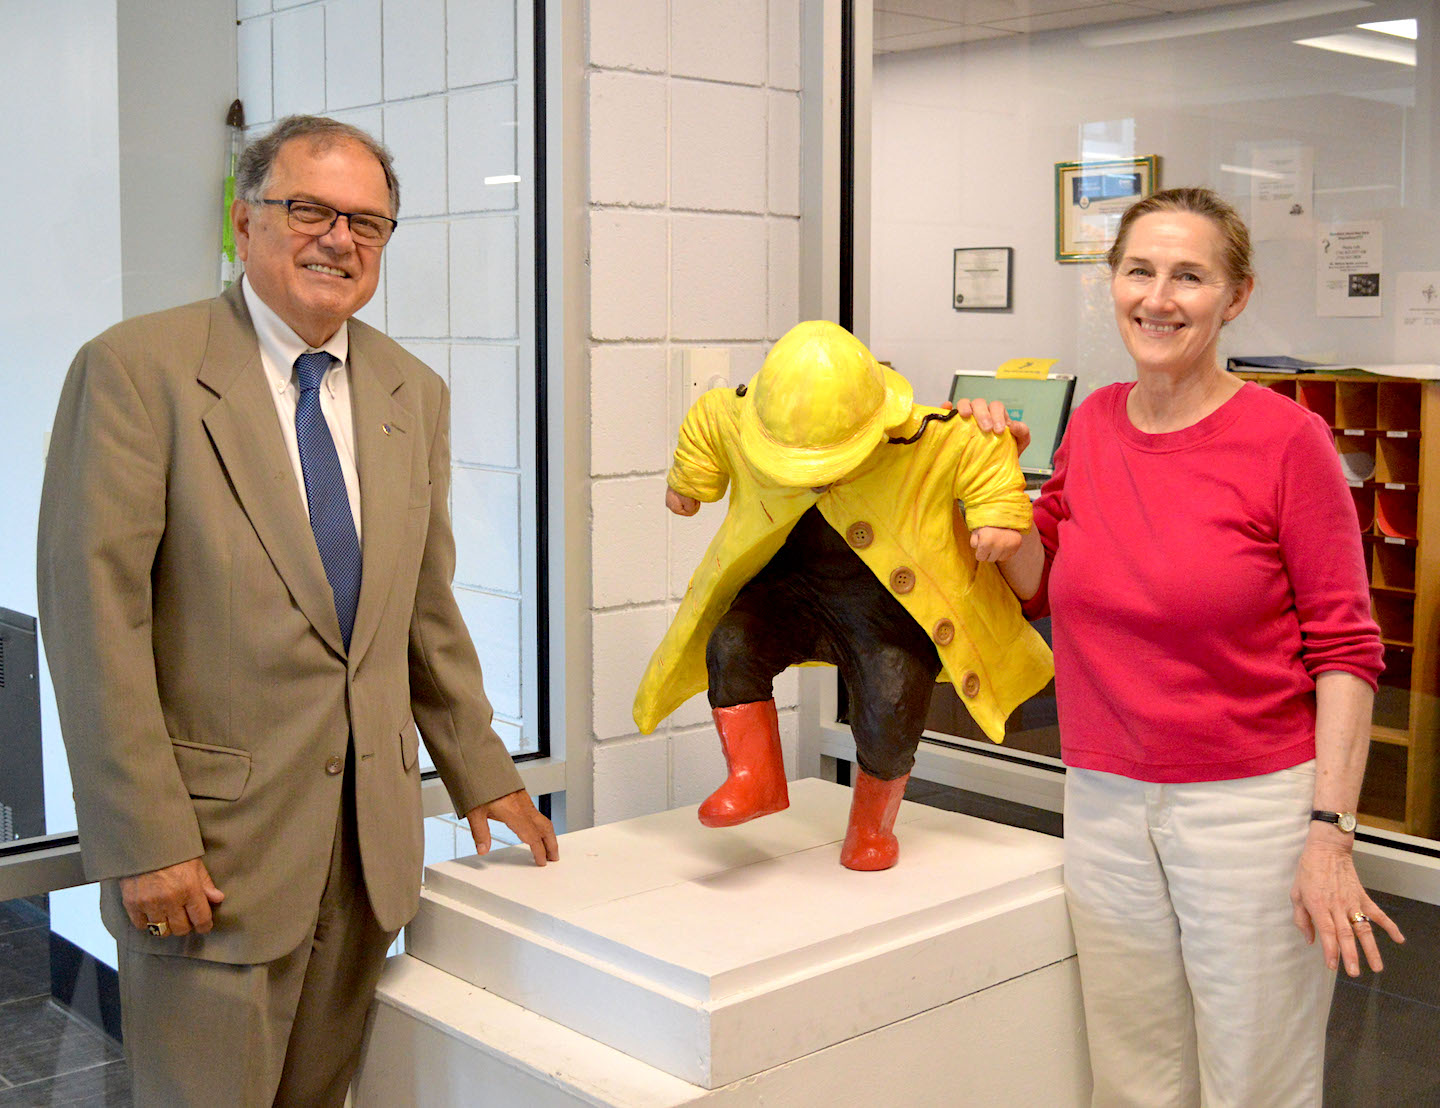 Pictured, from left: NCCC Interim President William J. Murabito, Ph.D., and artist Susan Geissler, '74, stand next to `Puddle Jumper.`